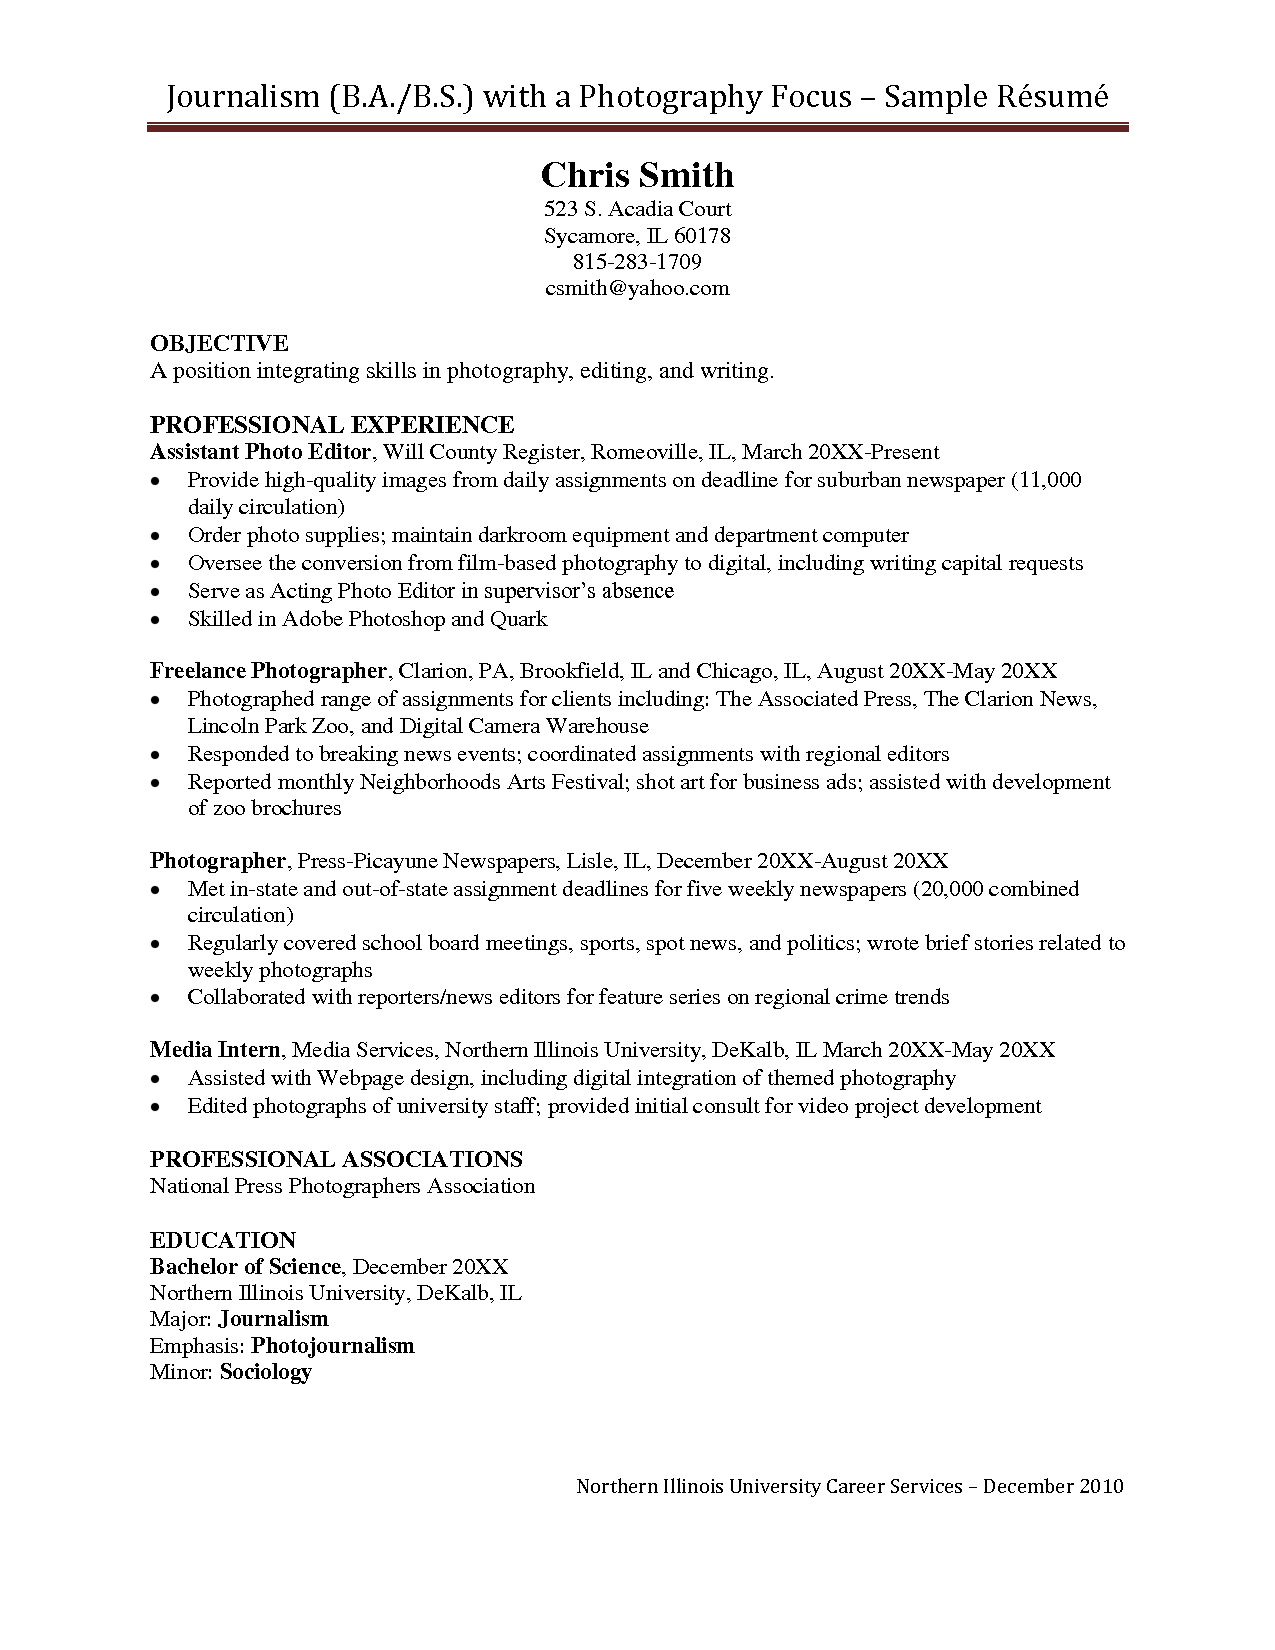 Scope Of Work Template  Research    Template